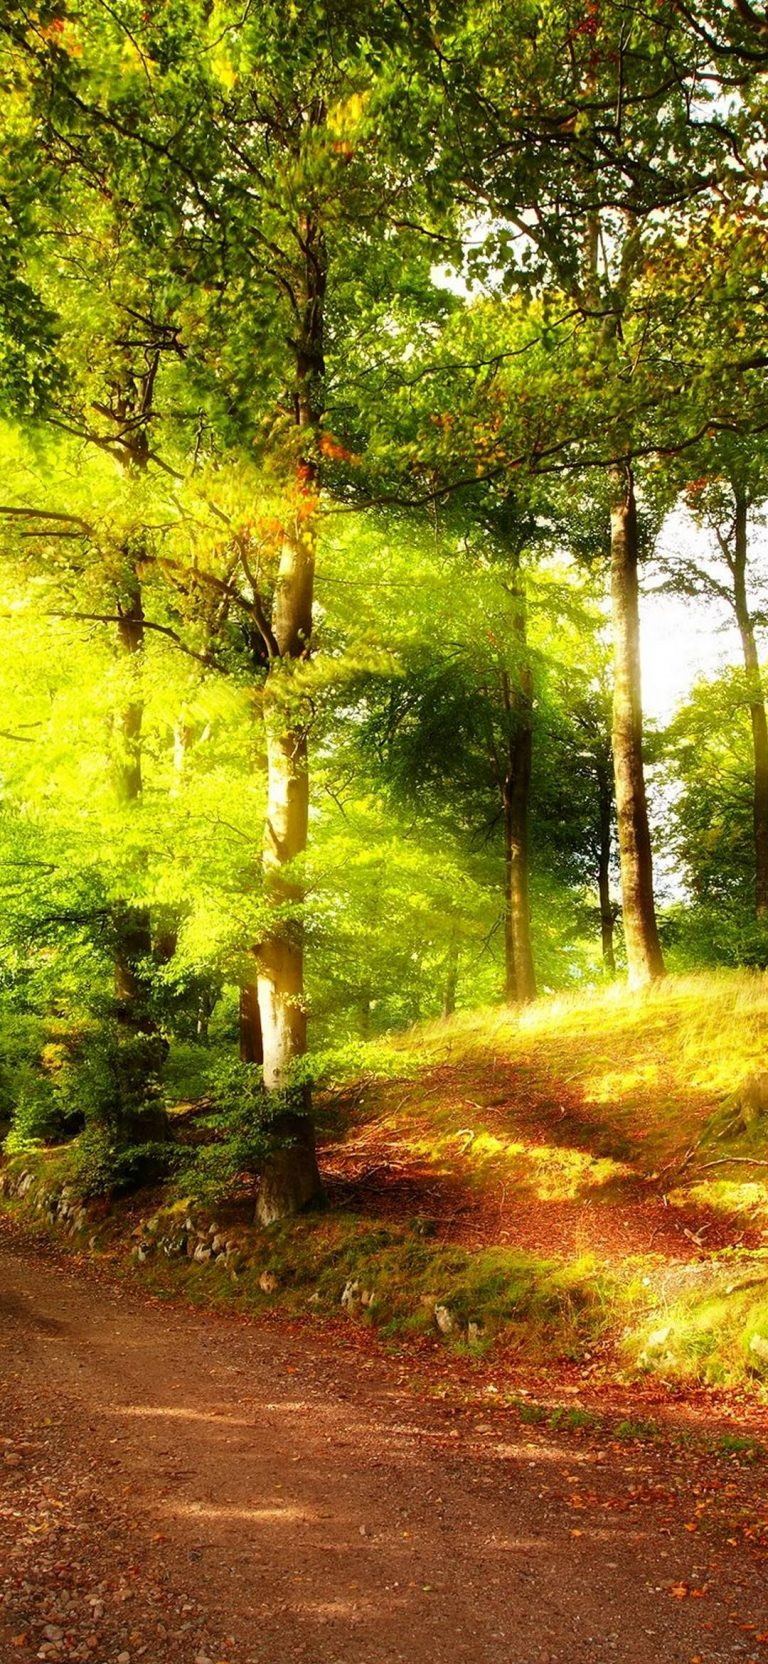 Wallpaper For Phones Fall Autumn Path In Forest Wallpaper 1080x2340